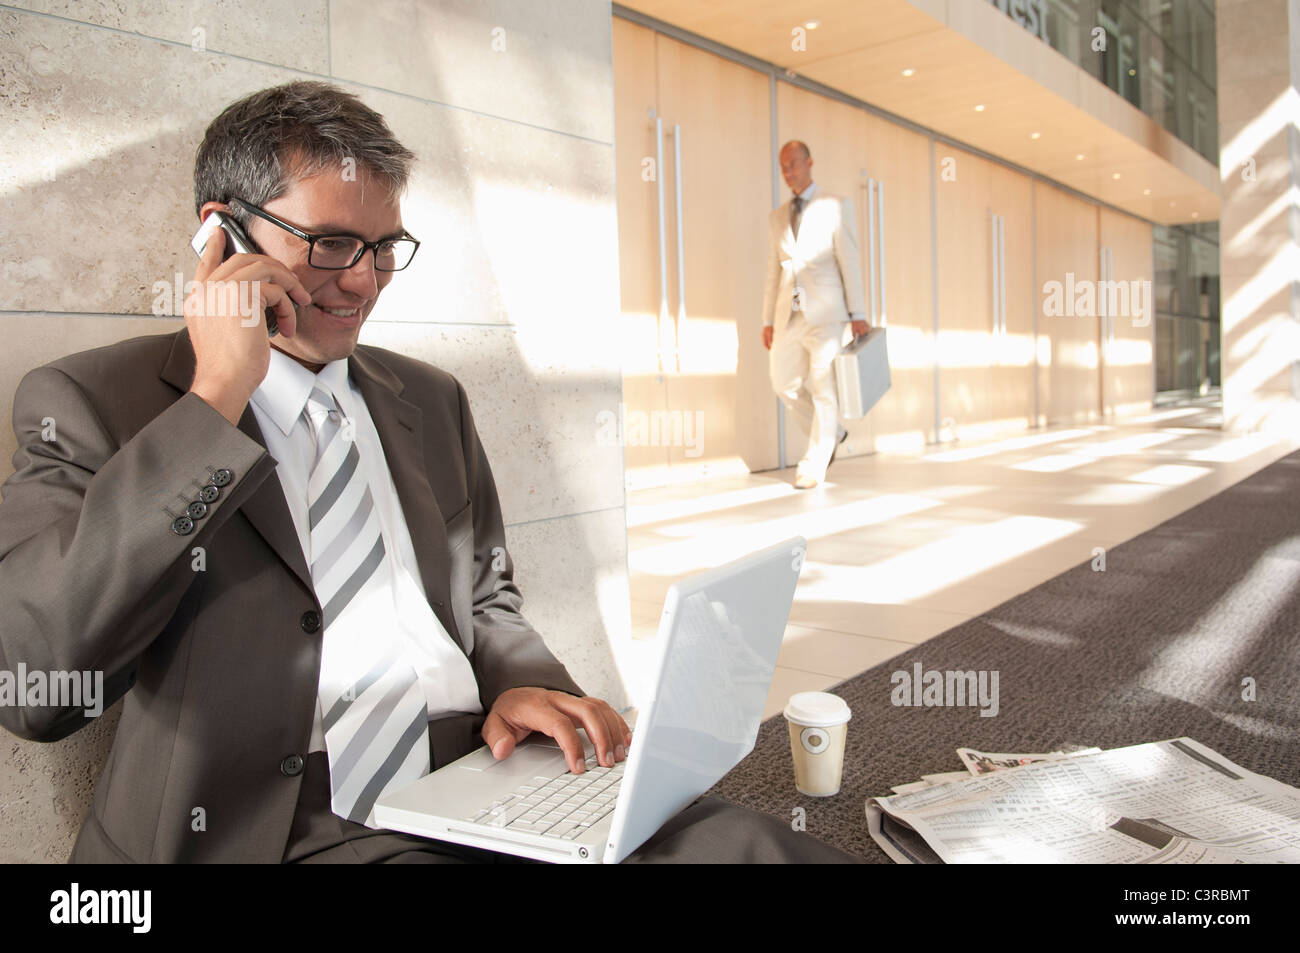 Buisness man on laptop and phone - Stock Image